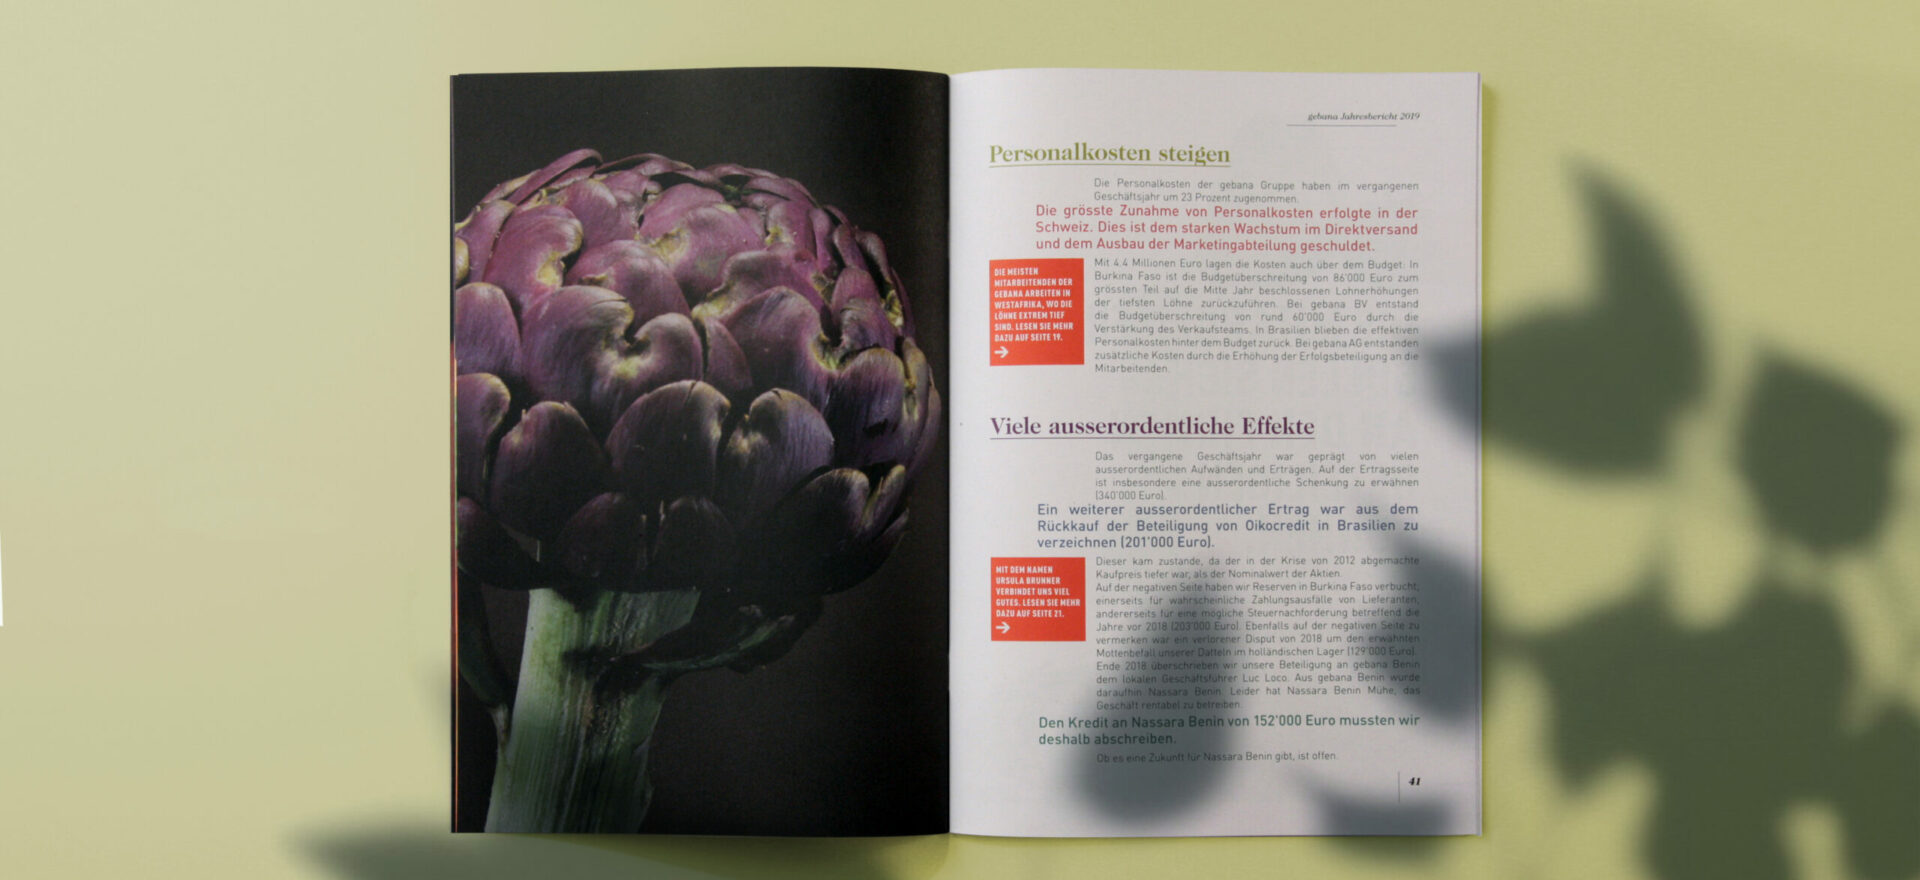 Open Catalogue for Gebana showing details of typography, titles, images and texts detailing composition of the Catalogue in a light green background.